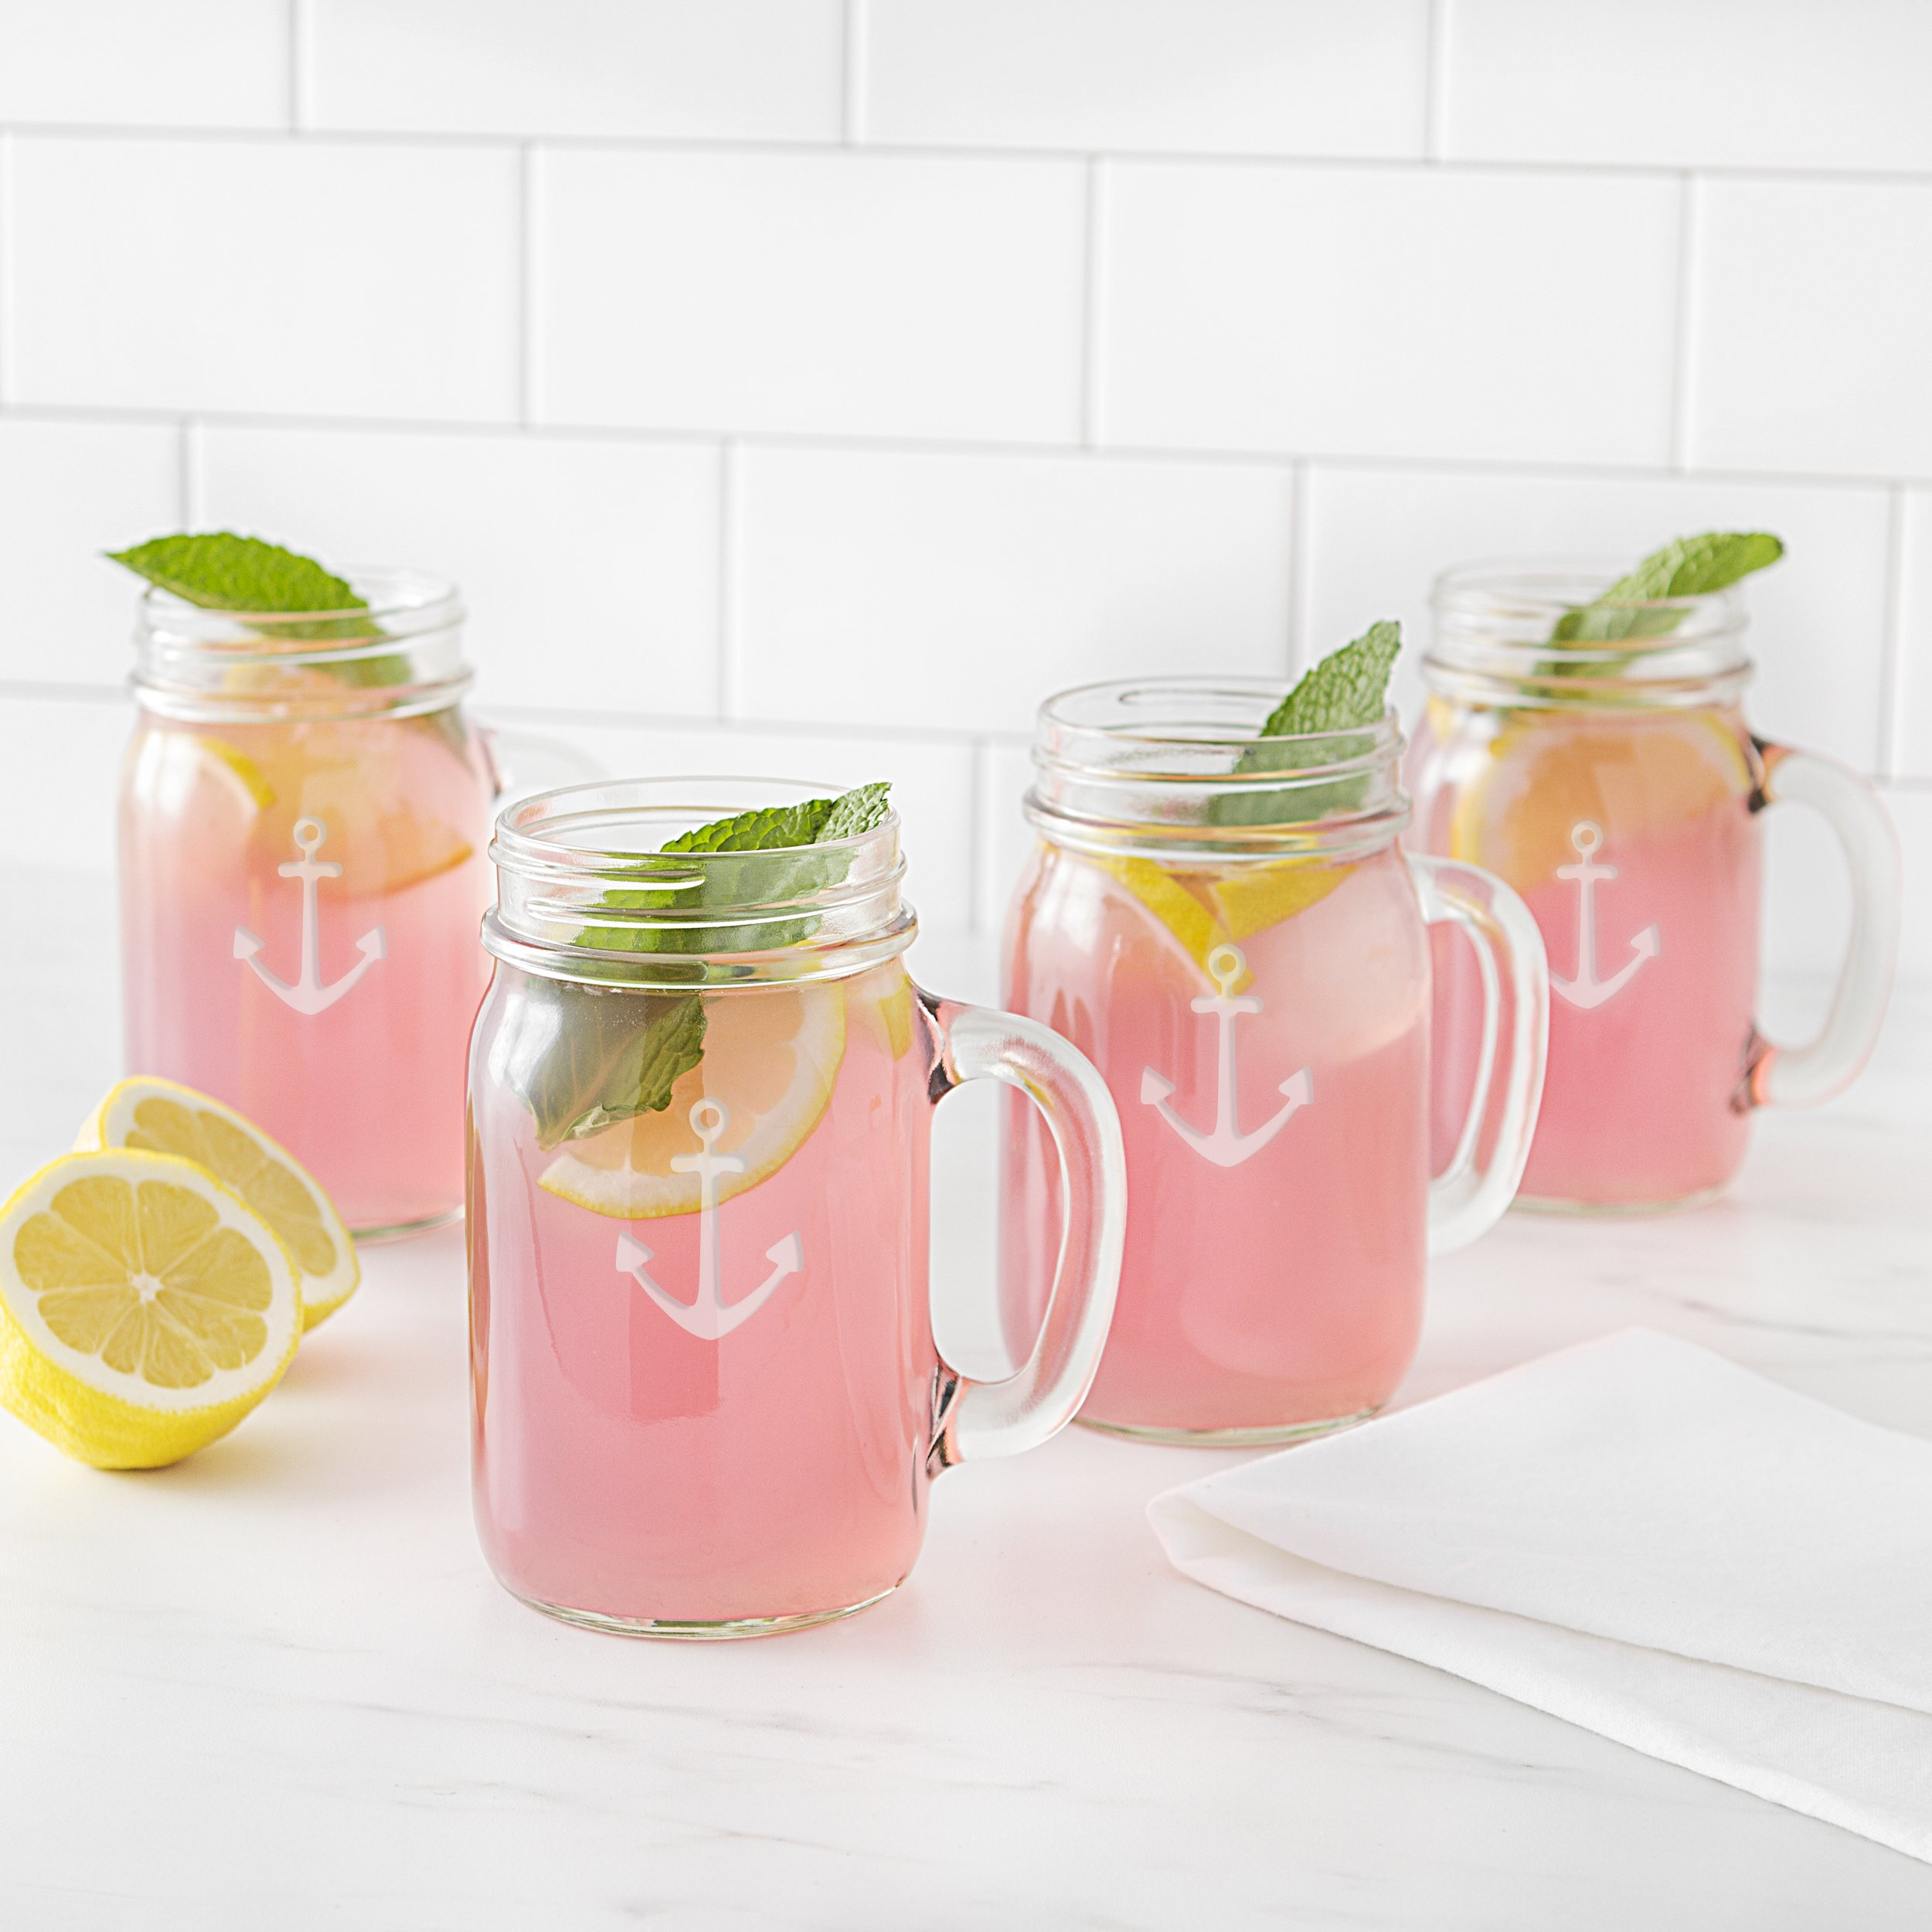 Cathy's Concepts CCA1190 Anchor Old Fashioned Drinking Jars Set Of 4 by Cathy's Concepts (Image #10)